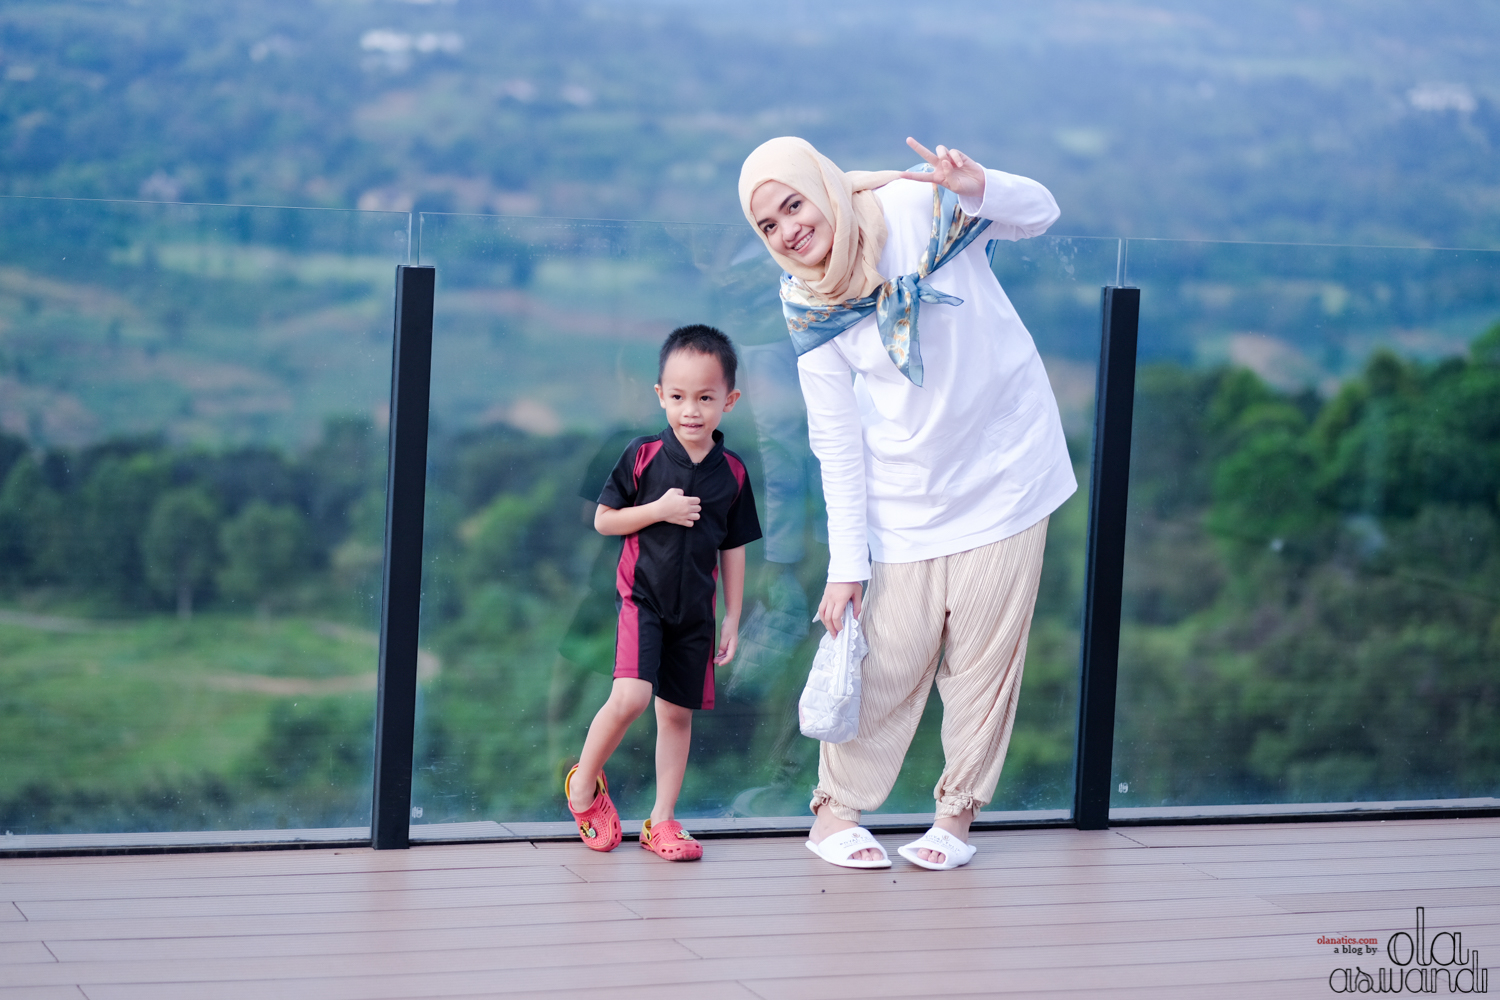 royal-tulip-22 Family Getaway: Royal Tulip Gunung Geulis Resort & Golf Bogor